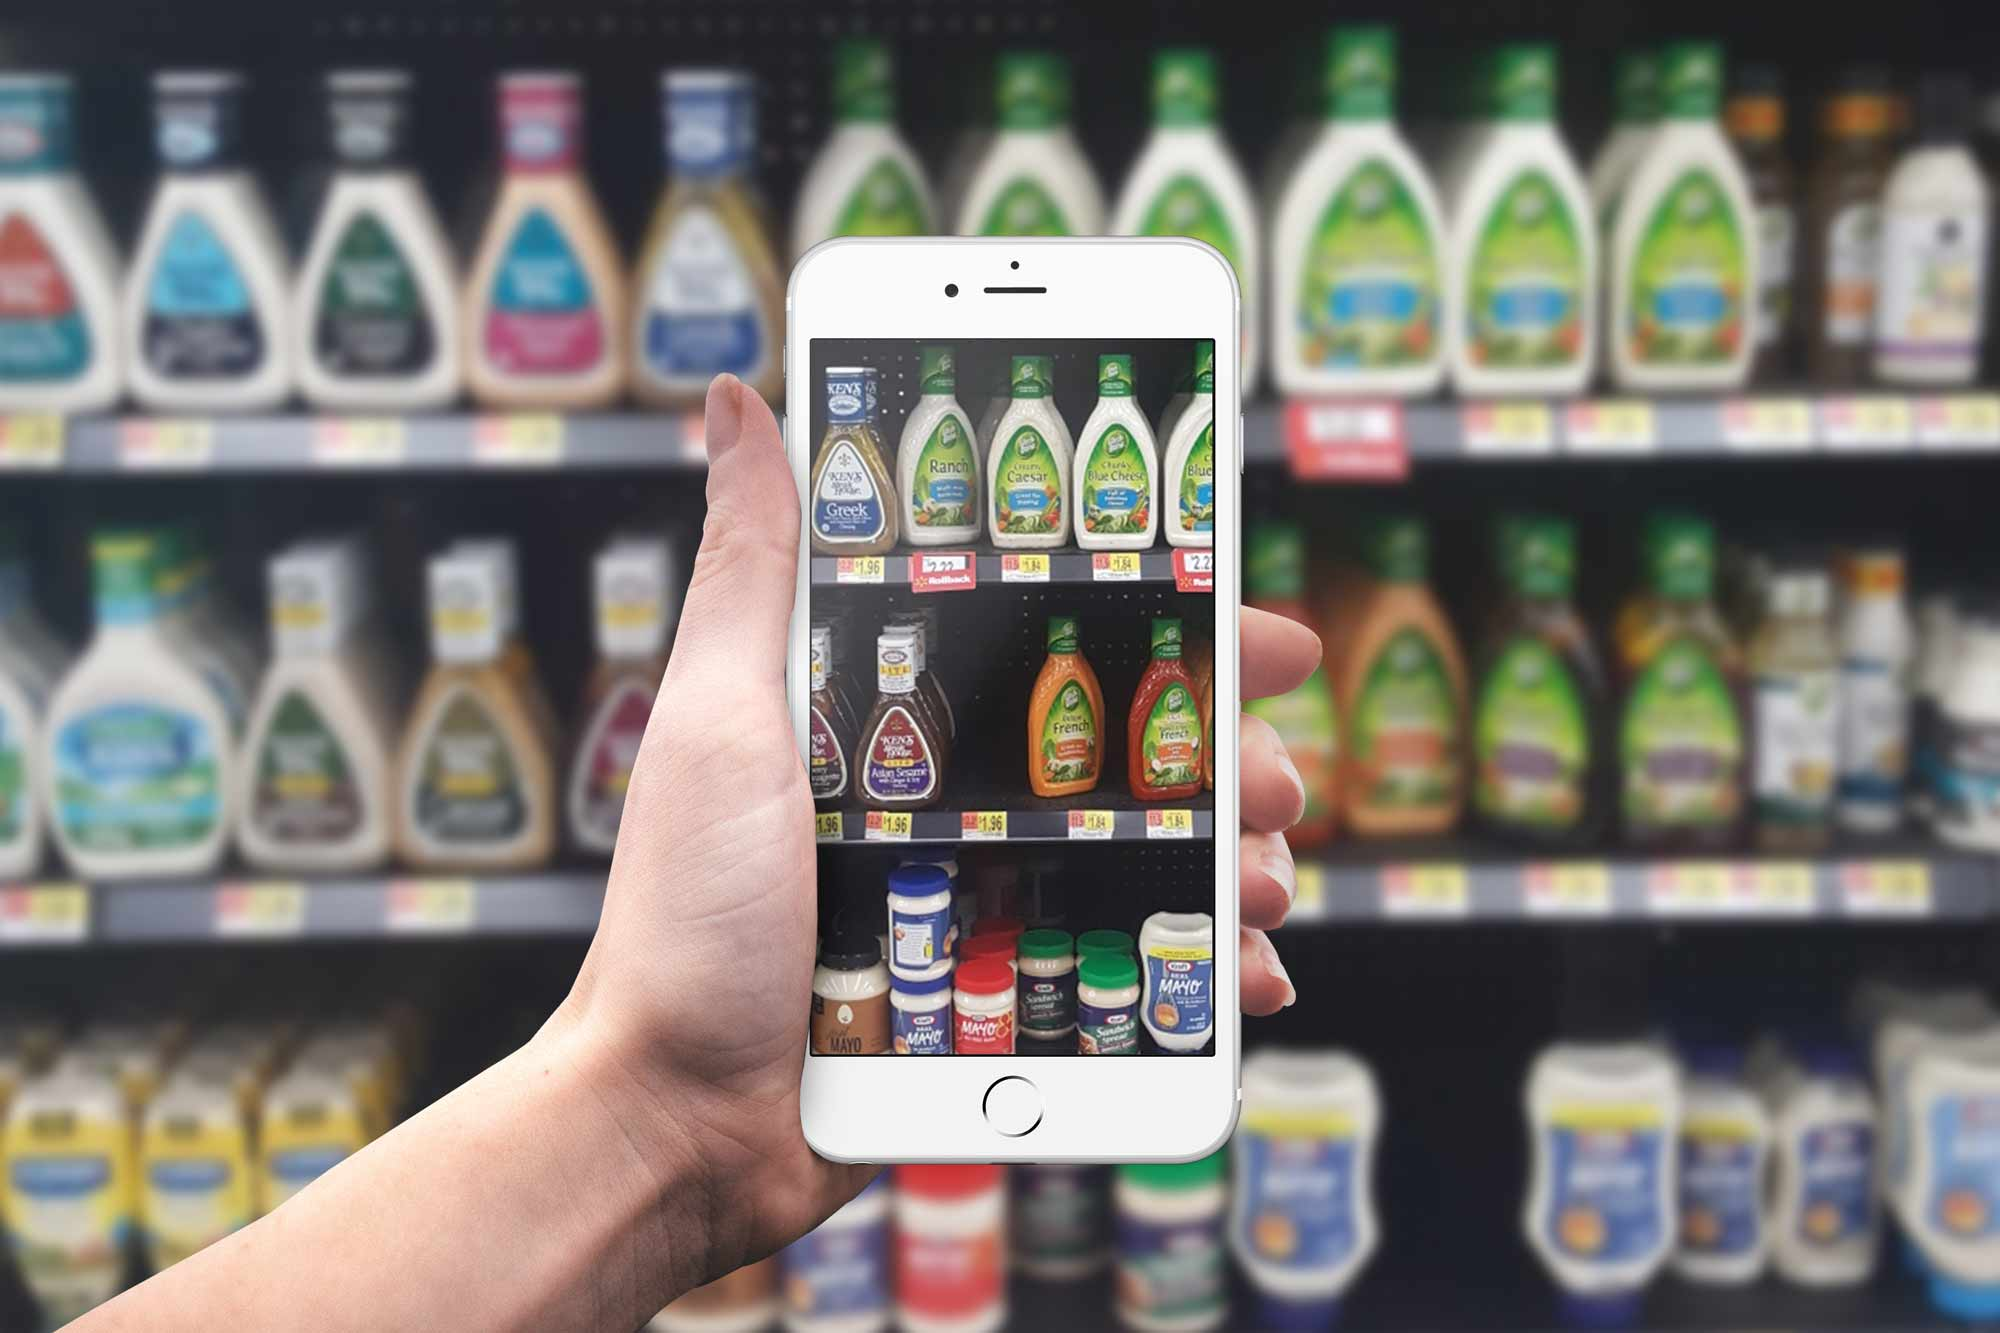 Monitor Store Shelves with Mobile Audits